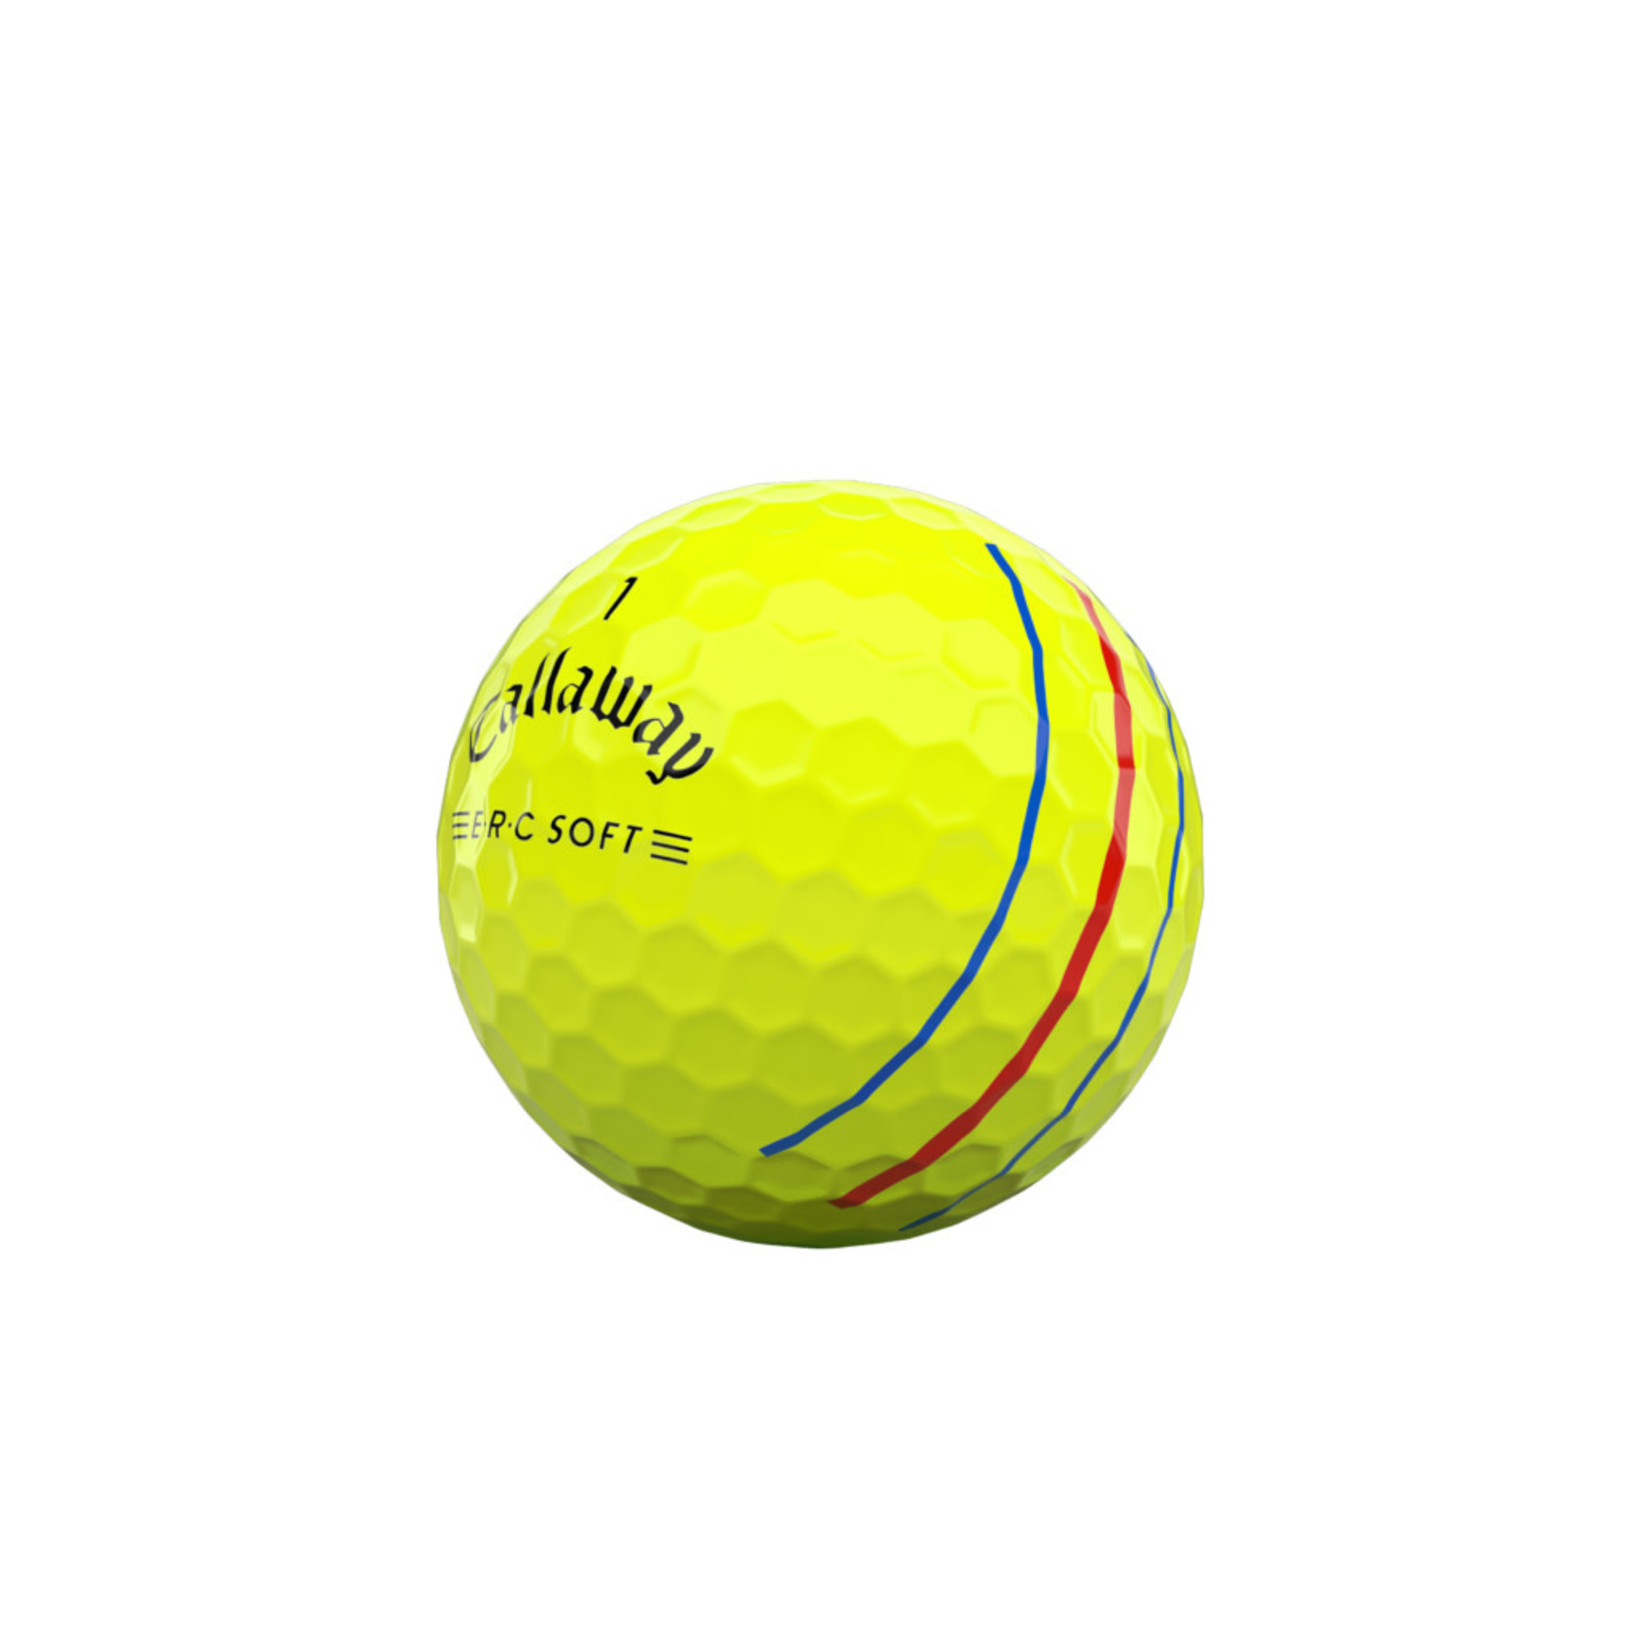 Callaway Callaway ERC Soft'21 Triple Track Yellow